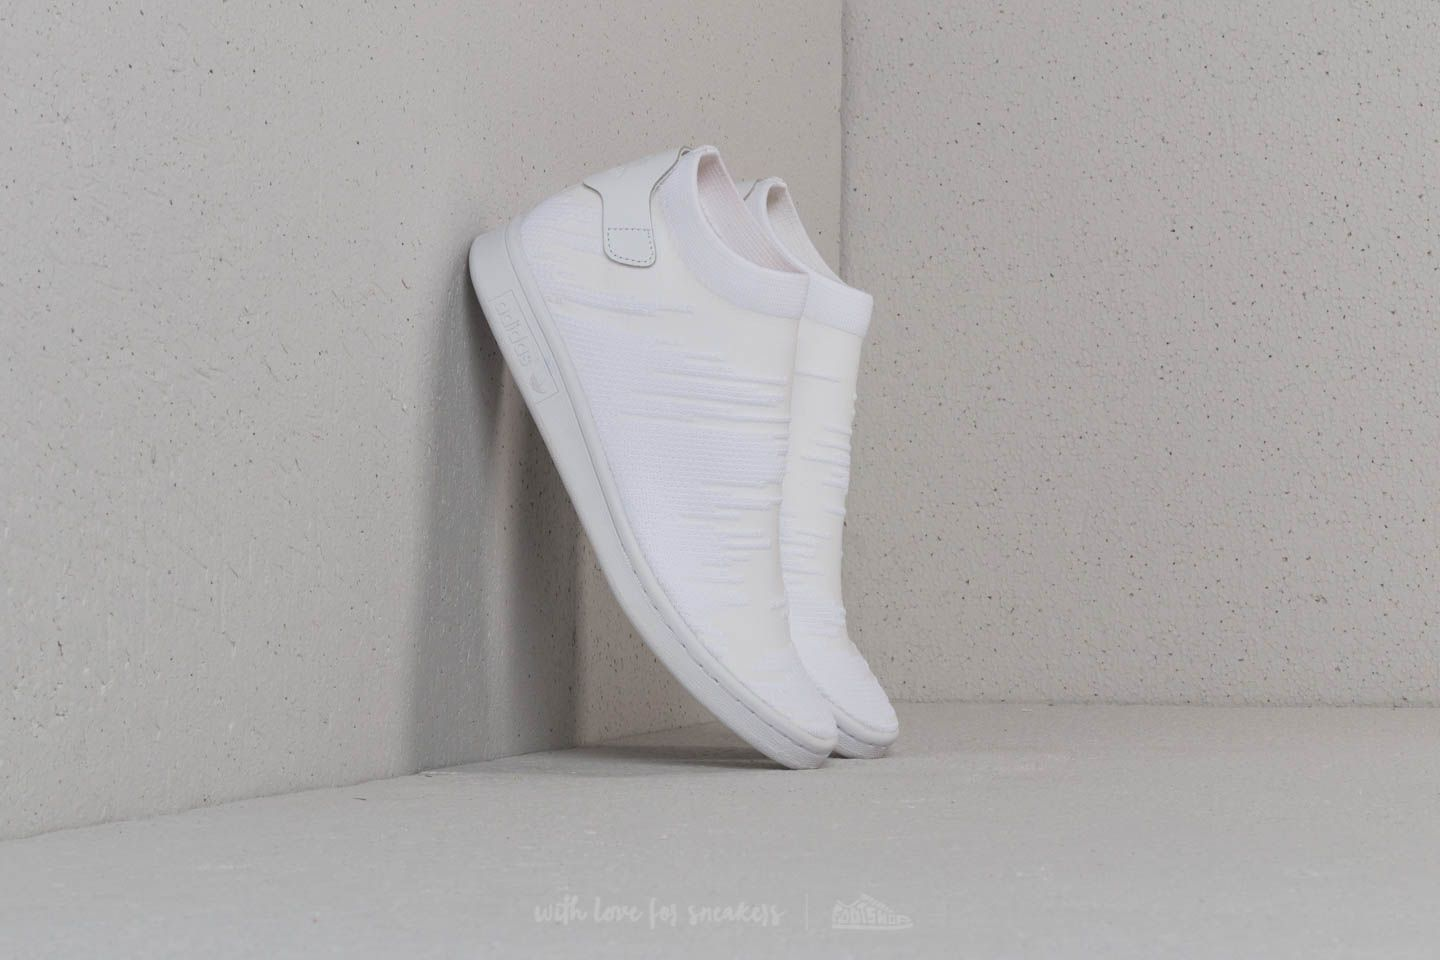 reputable site 8fb65 d1076 adidas Stan Smith Sock Primeknit W Ftw White/ Ftw White/ Ftw ...